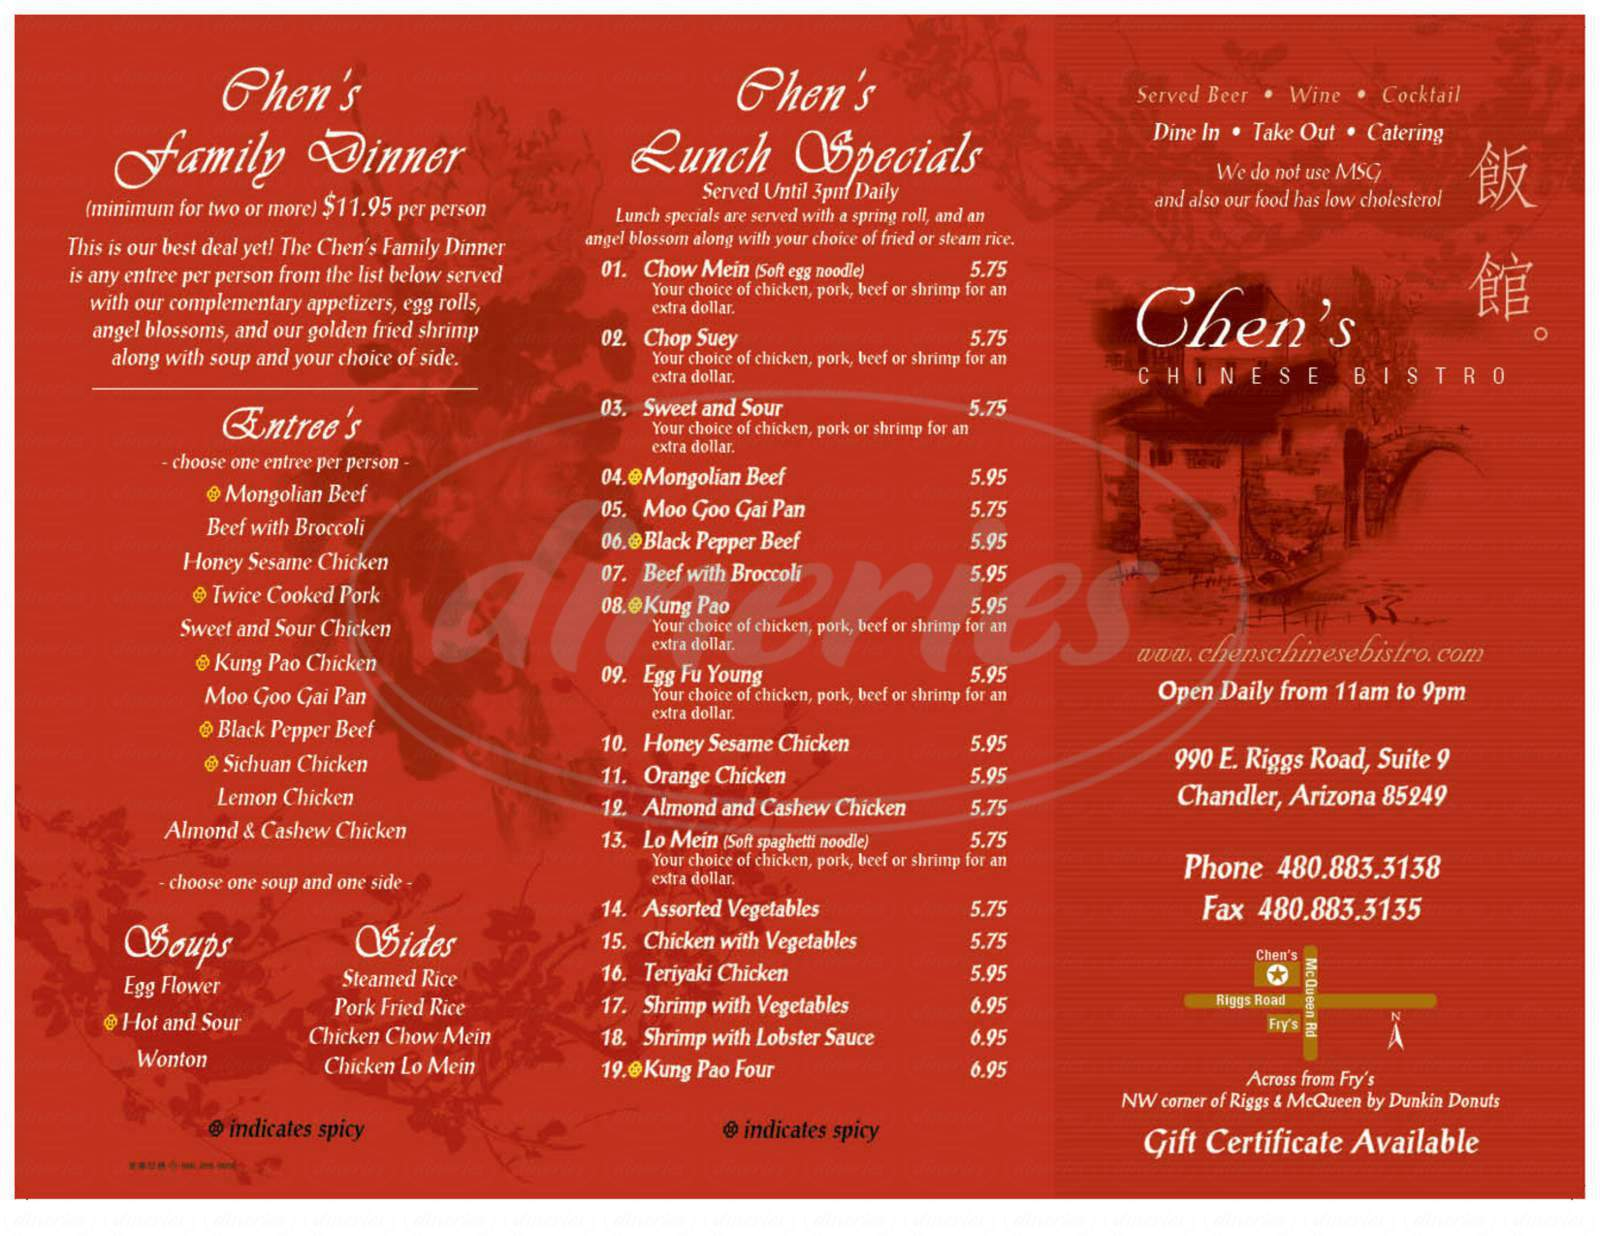 menu for Chen's Chinese Bistro